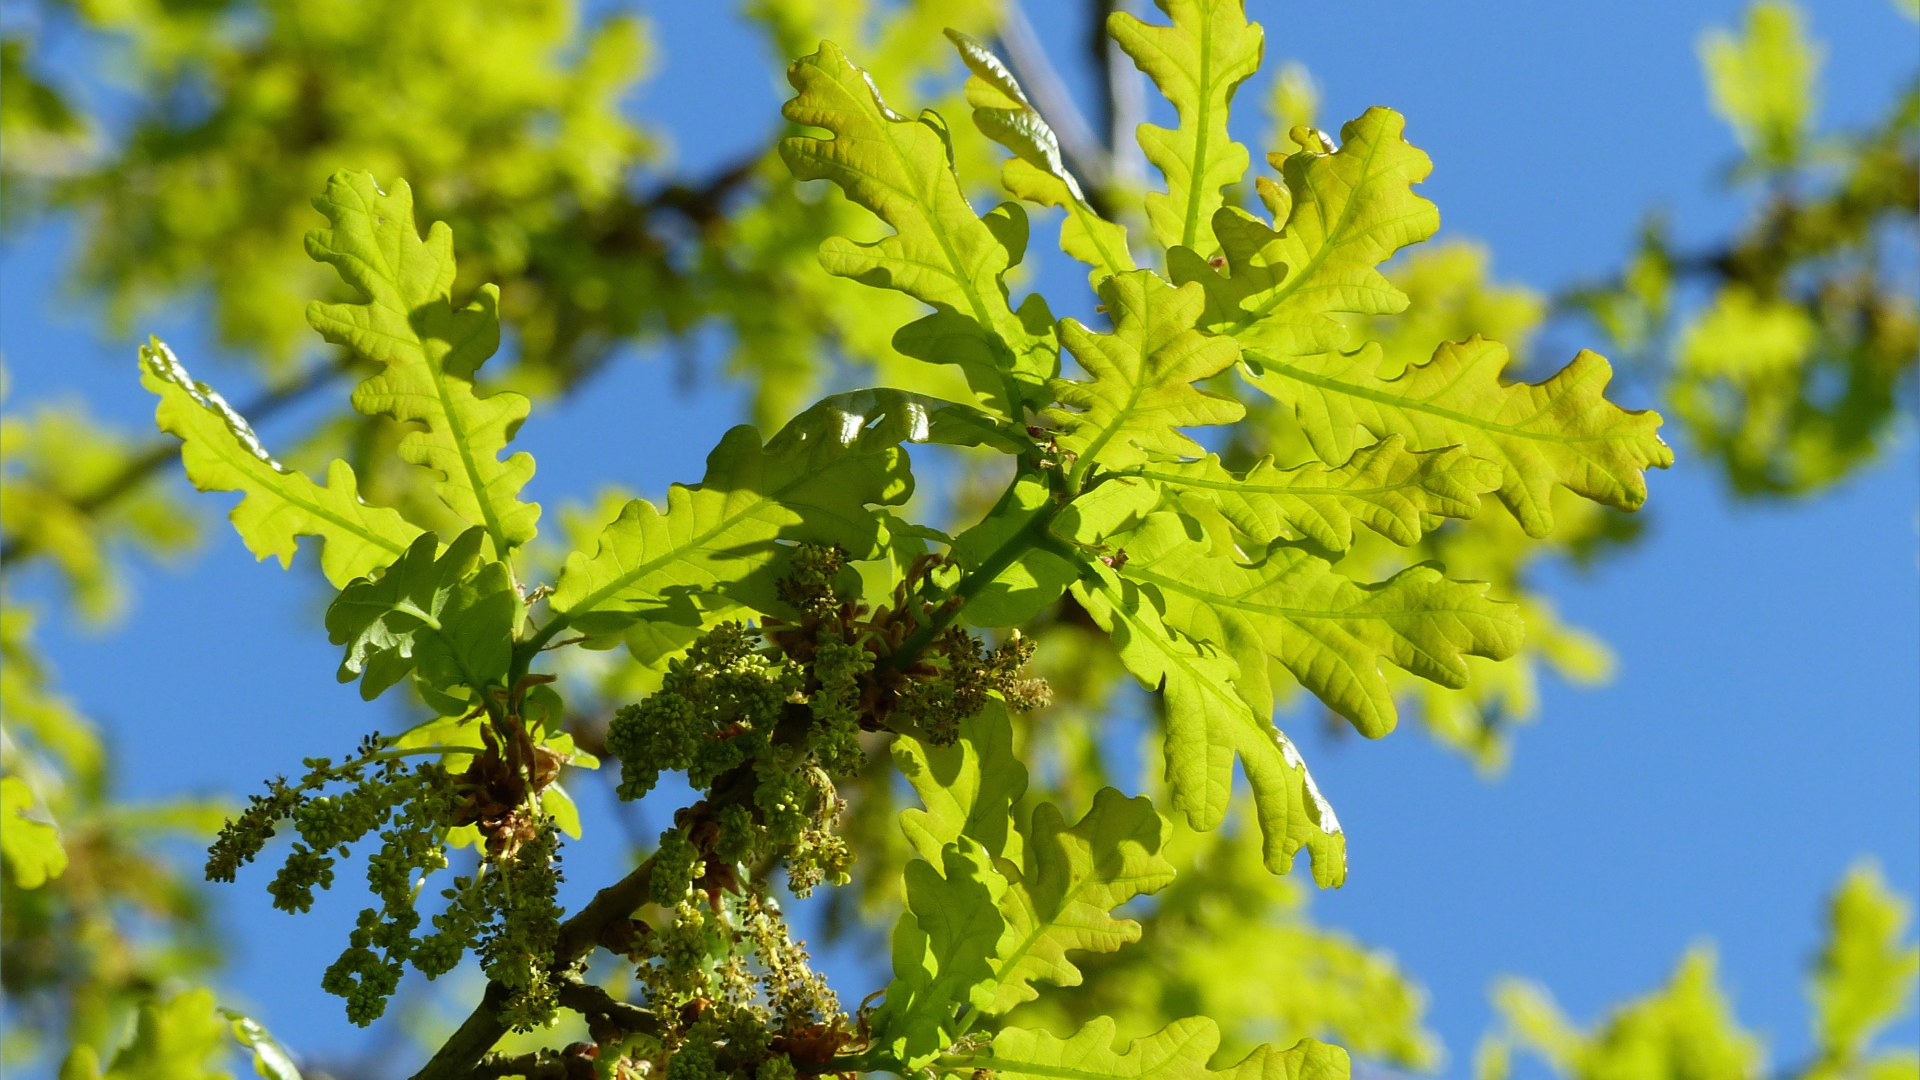 Newly opened oak tree leaves and flowers